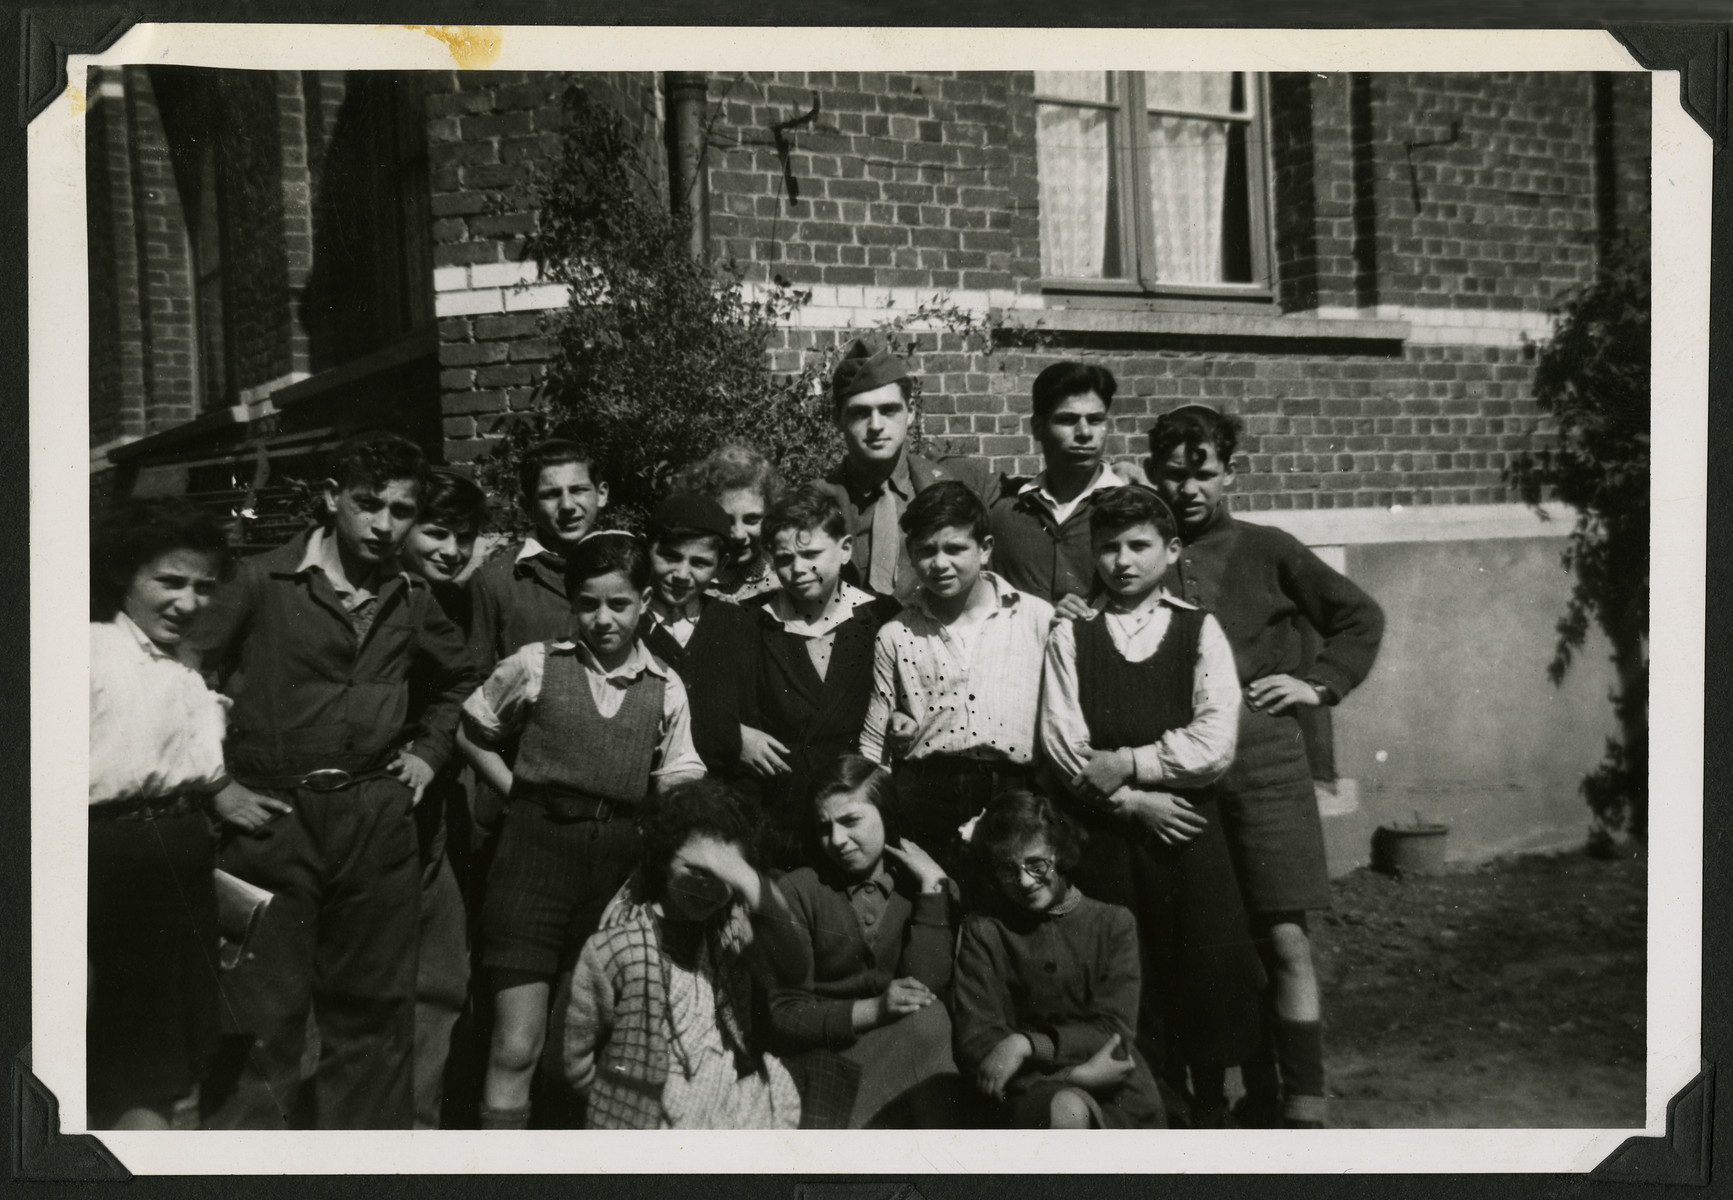 David Marcus poses with a group of Jewish children in Marquain, Belgium.